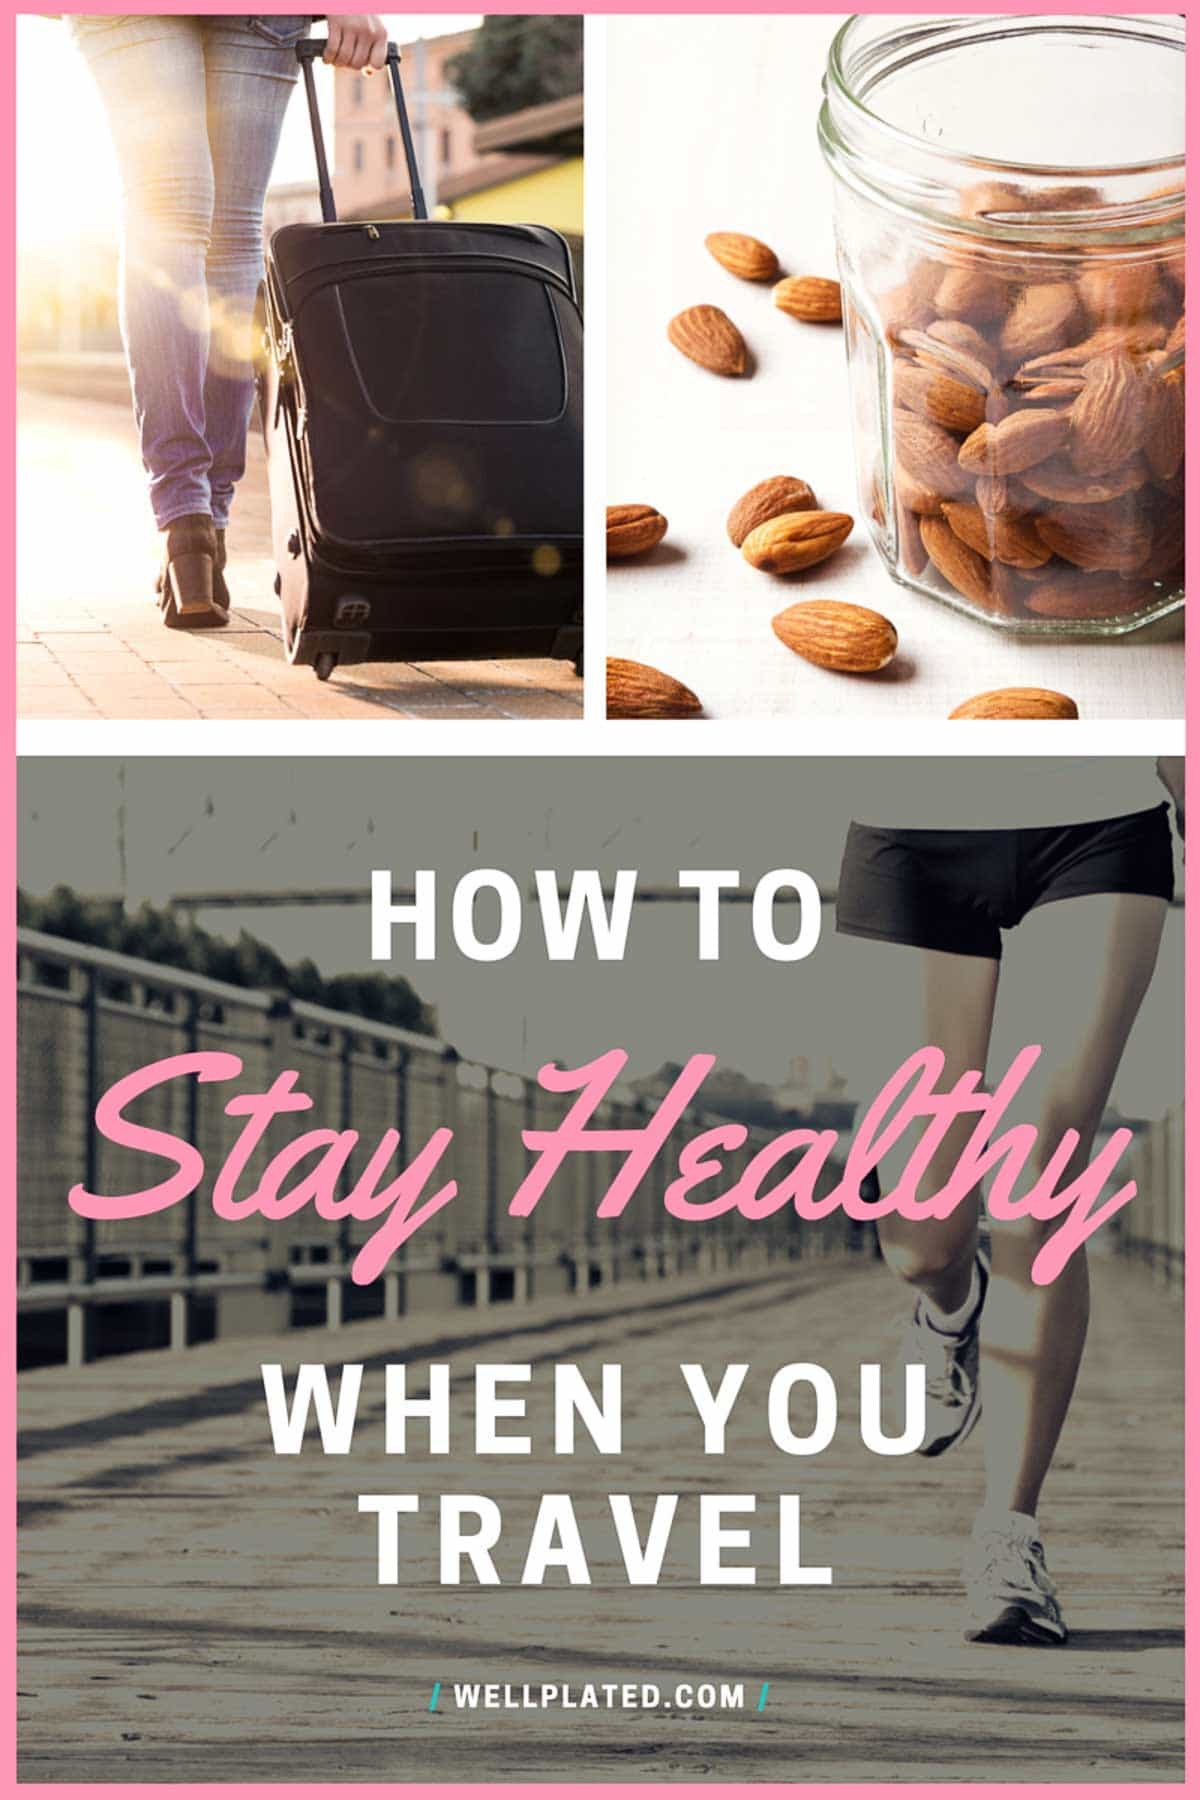 Whether you are traveling for work or going on vacation, these healthy travel tips will help you stay in shape. REALISTIC, helpful ideas including healthy travel snacks, exercise motivation, and more. @wellplated